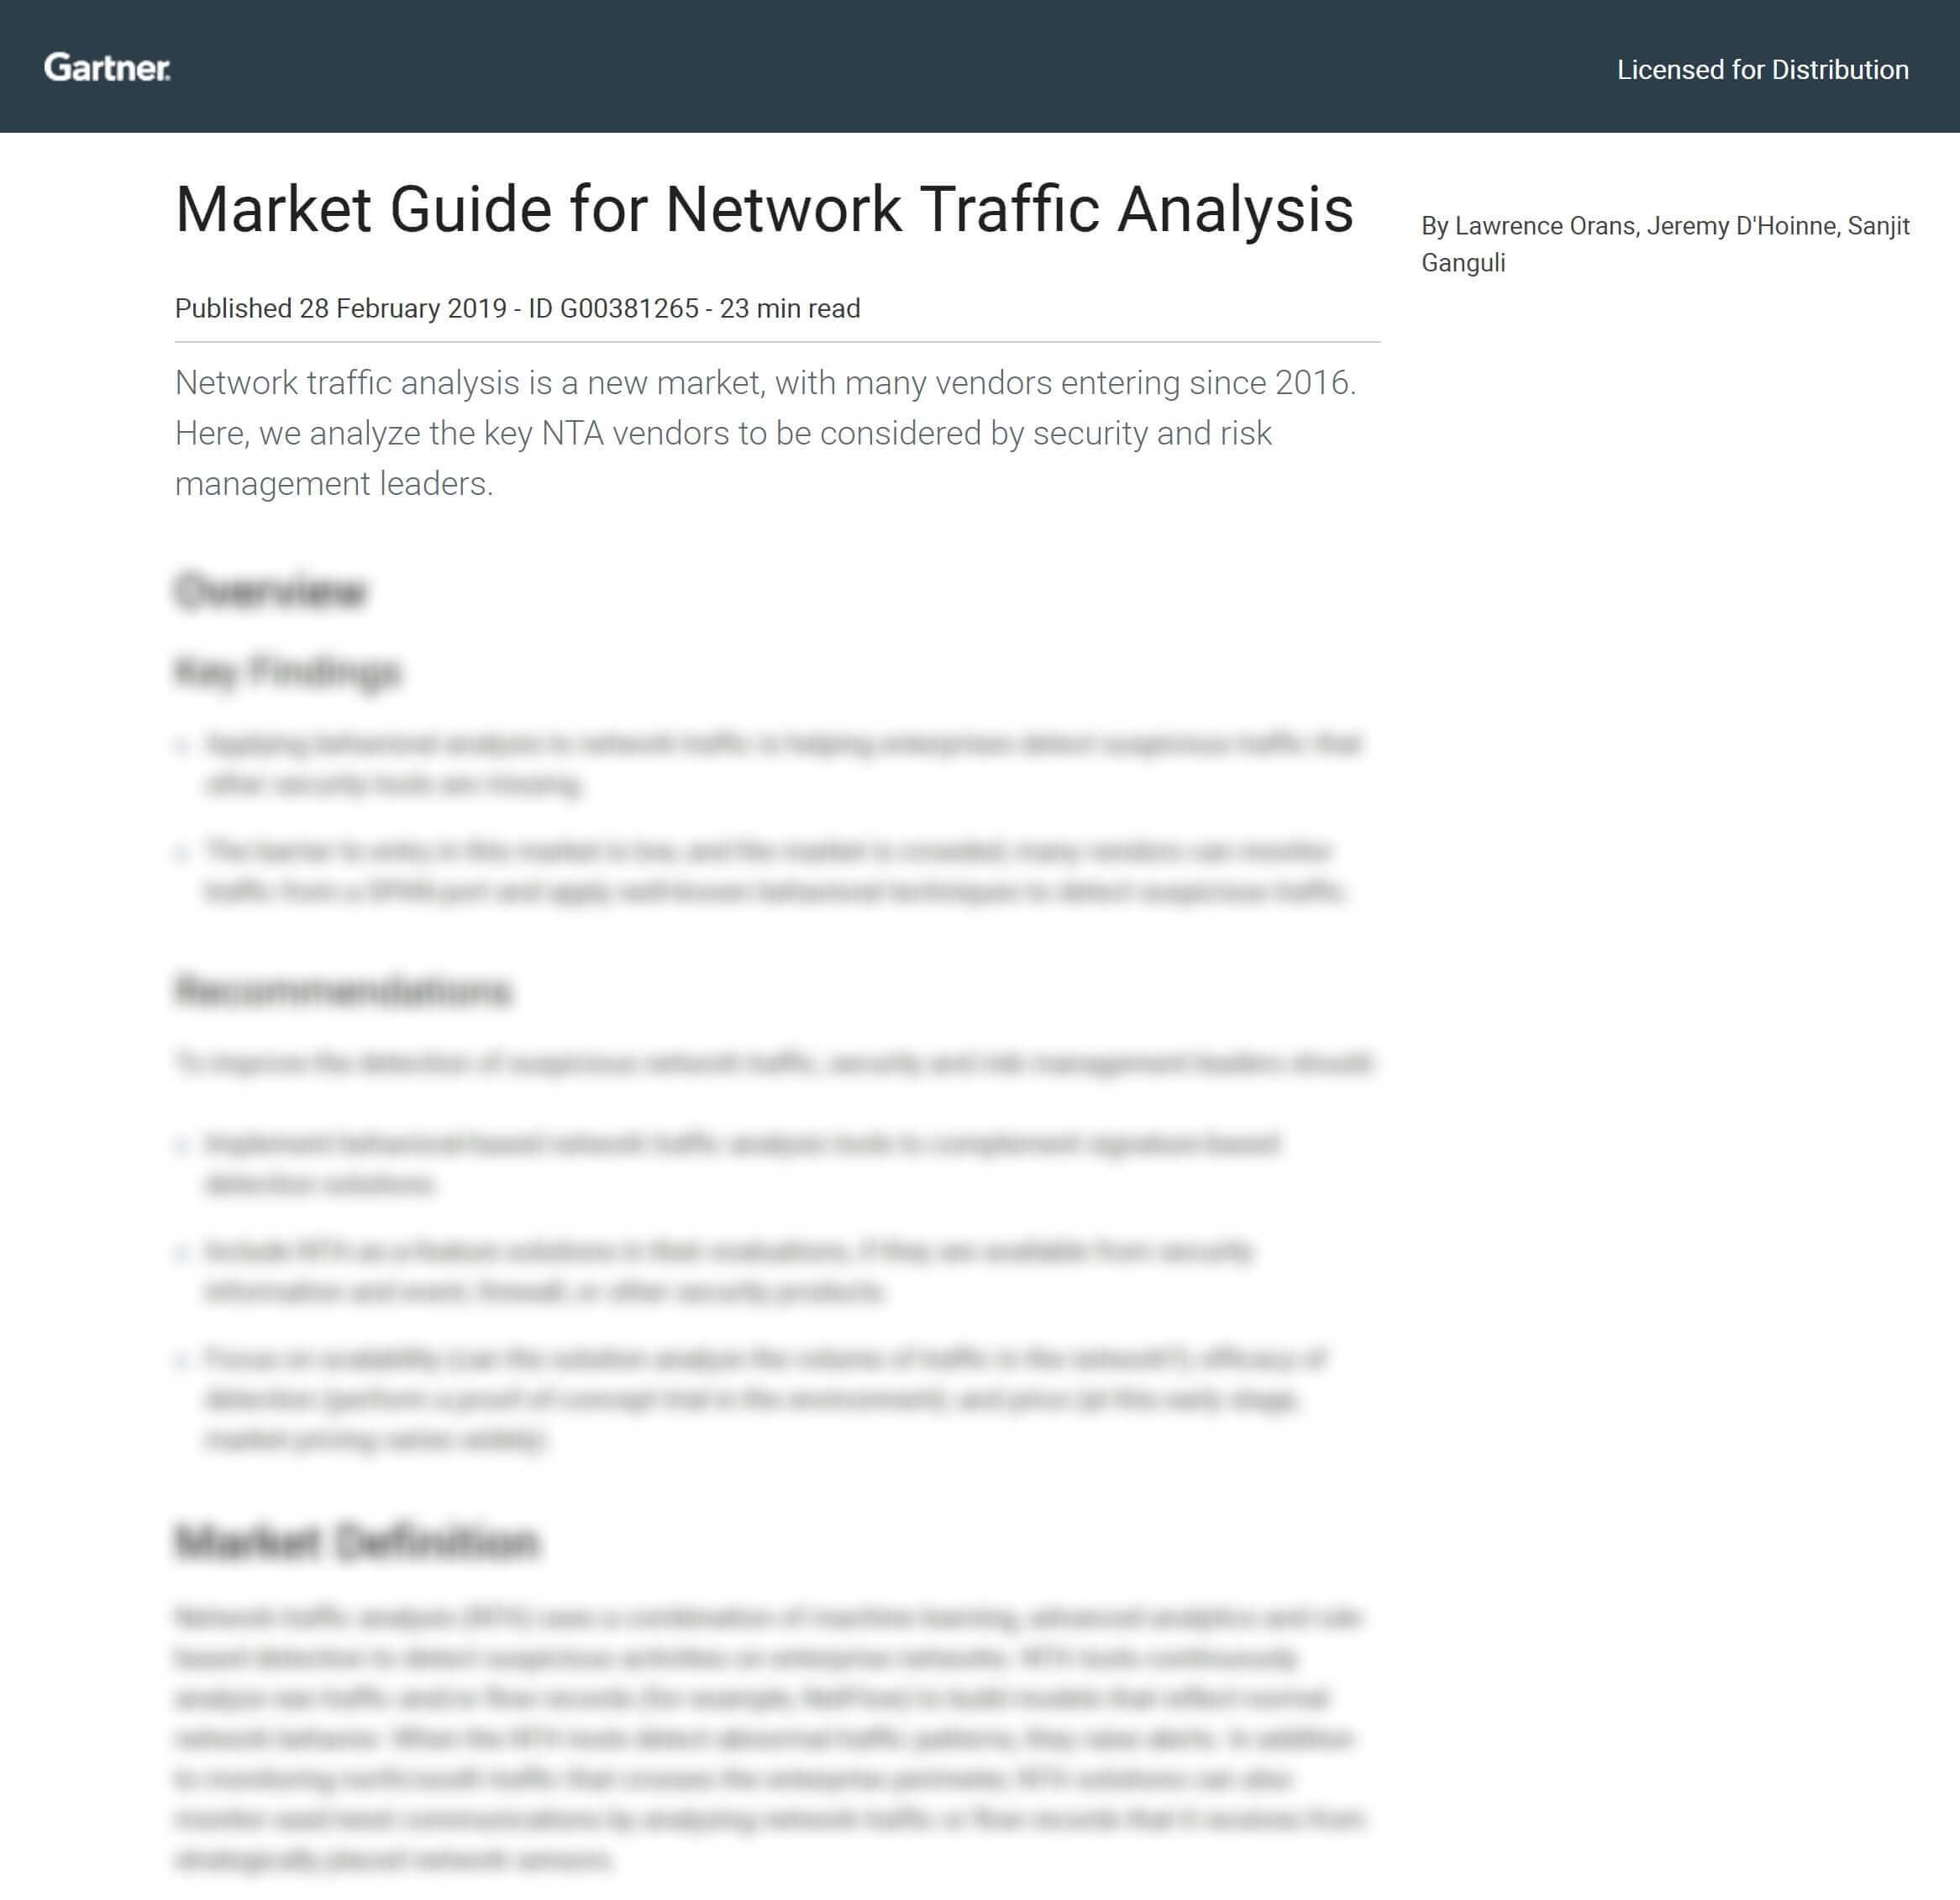 first page of Gartner market guide for network traffic analysis 2019